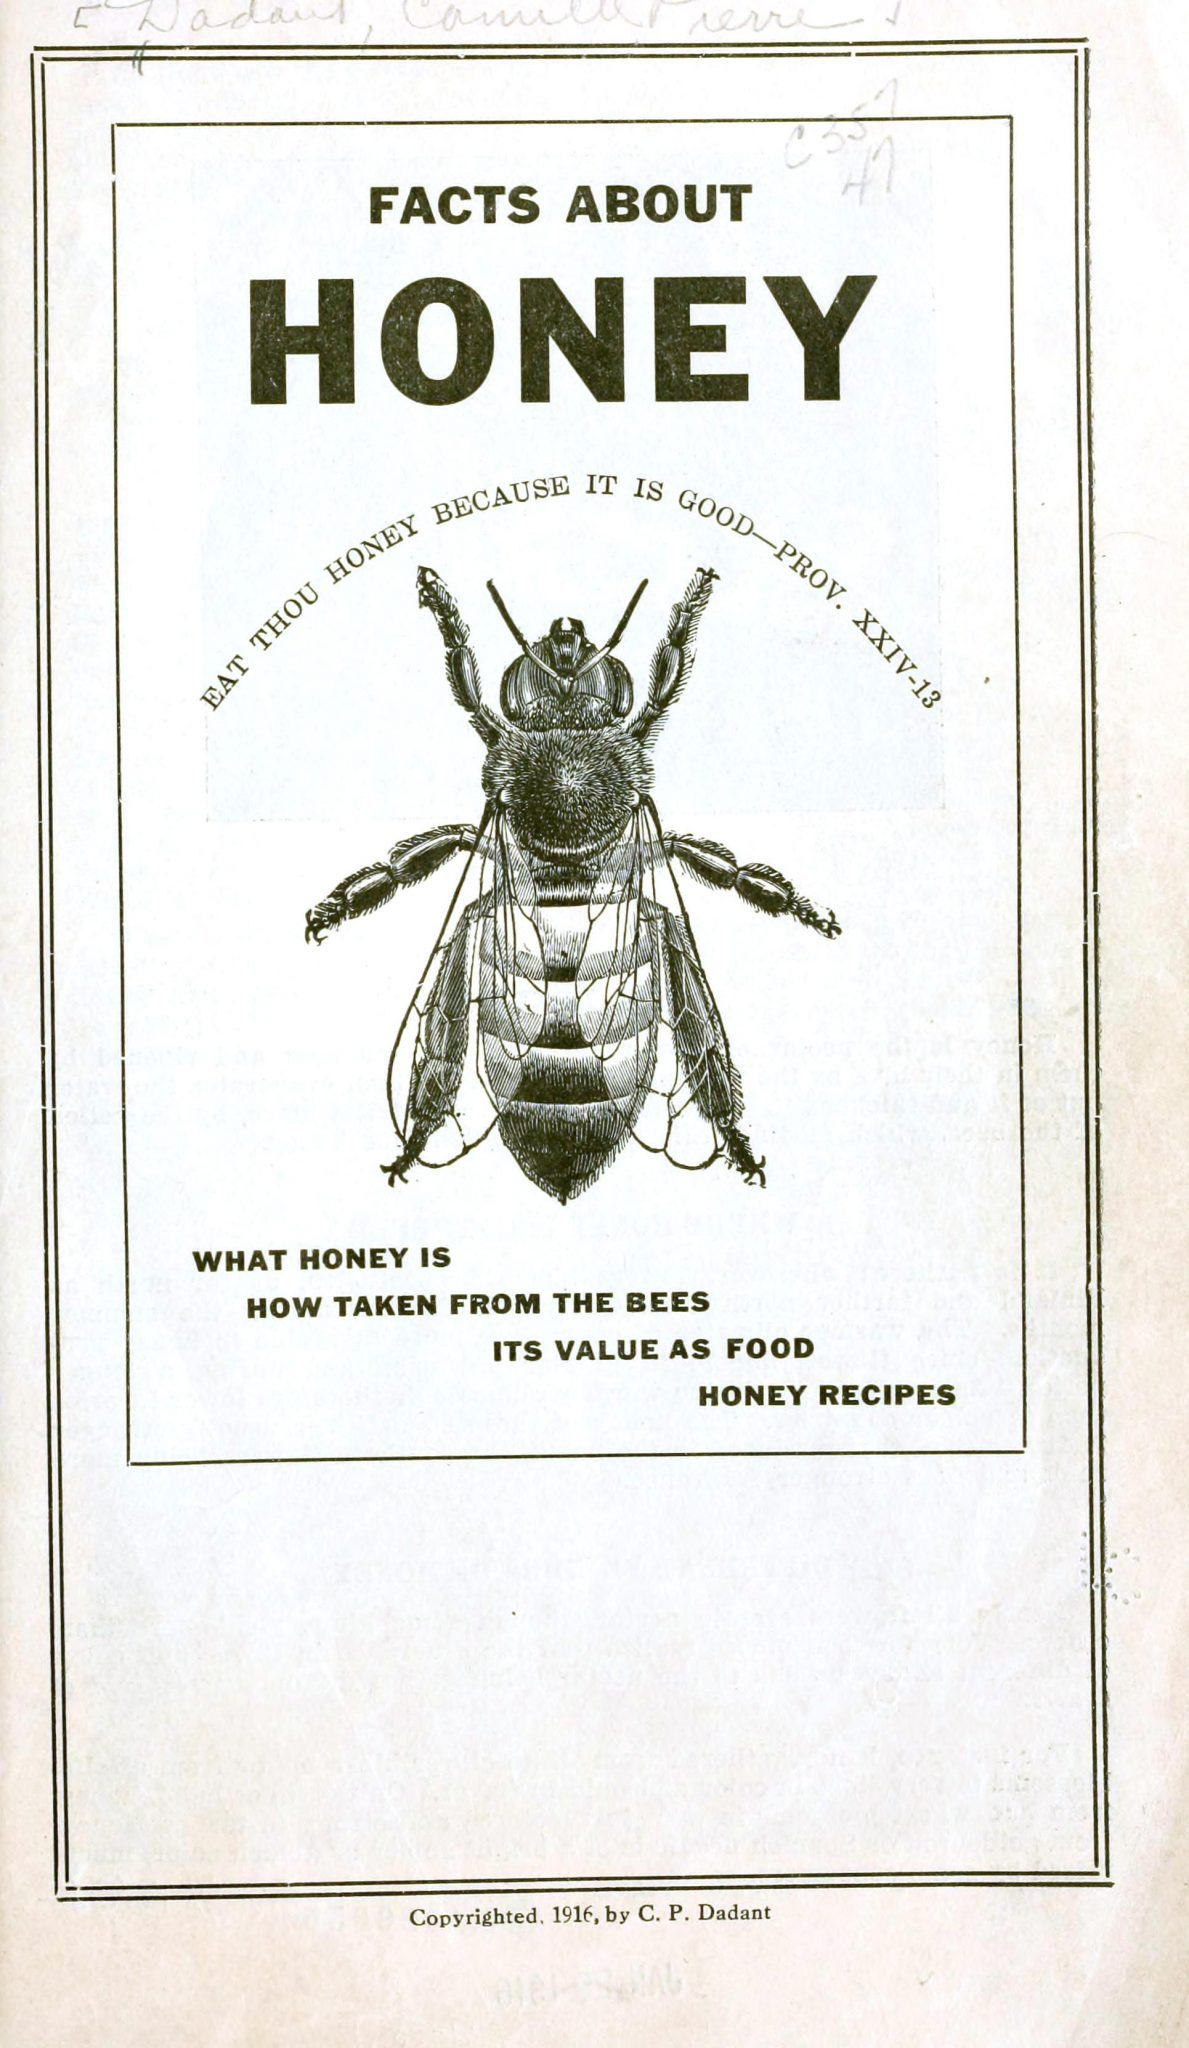 A vintage illustration for honey facts.